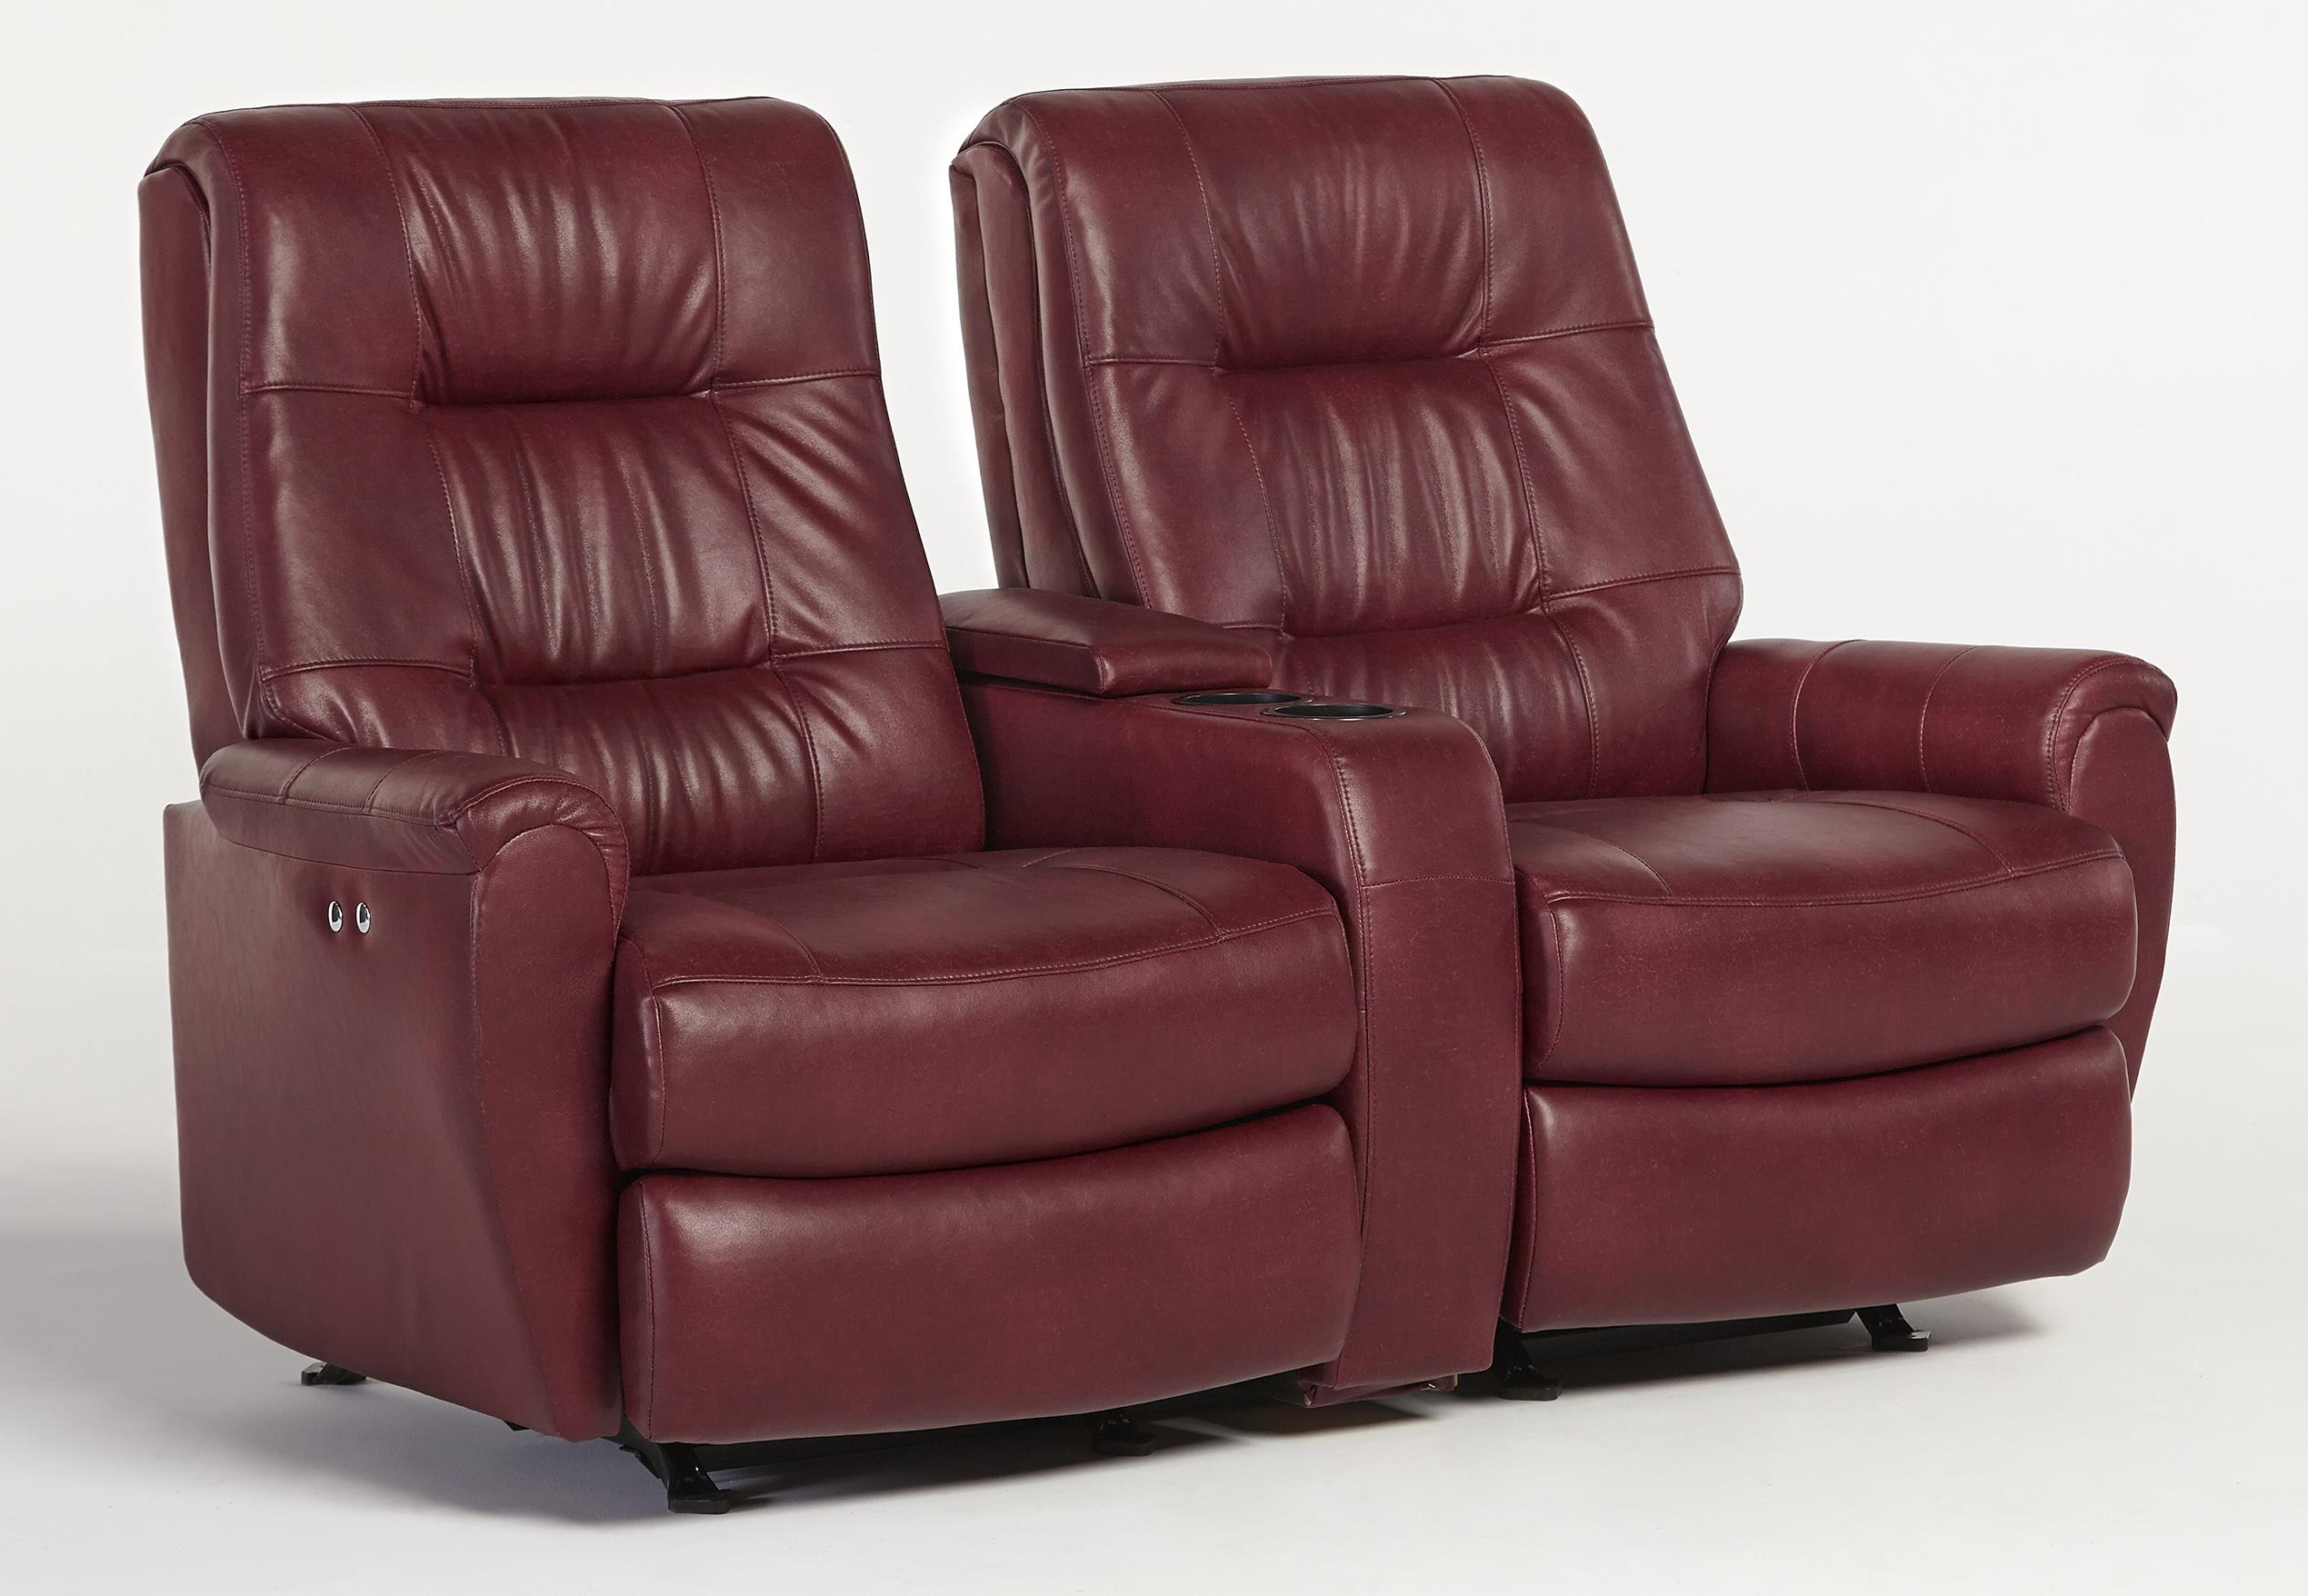 Small scale power rocking reclining loveseat with drink and storage console by best home Storage loveseat